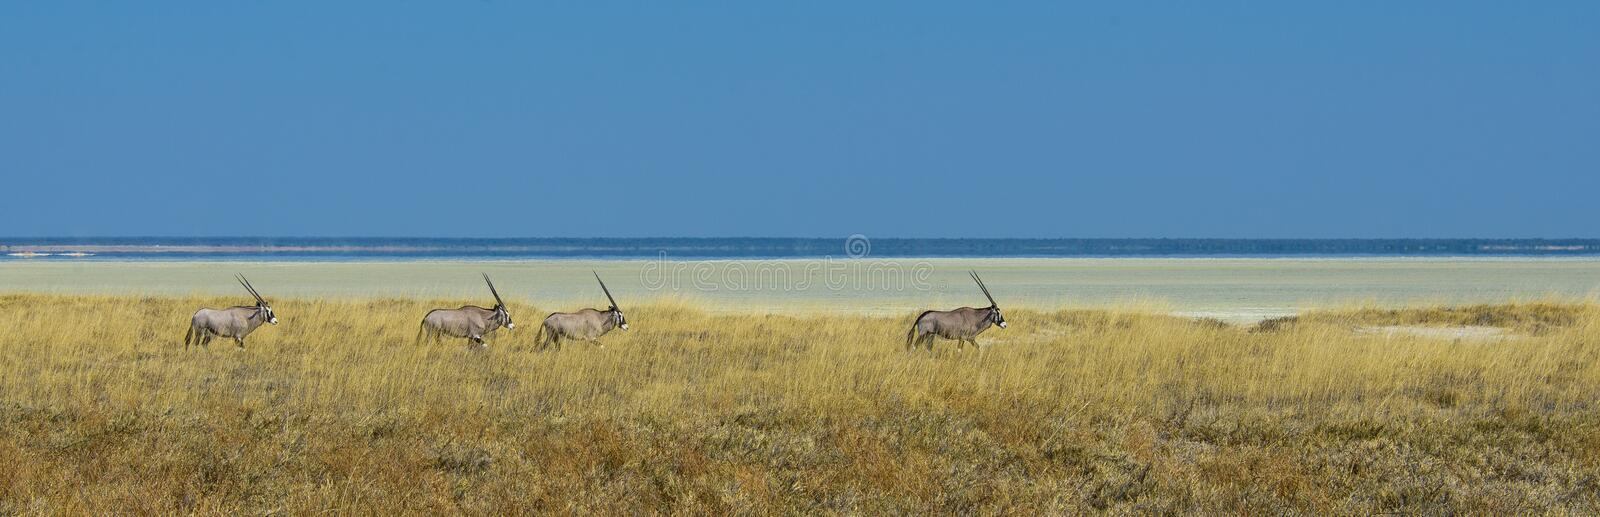 Gemsbok seul photographie stock